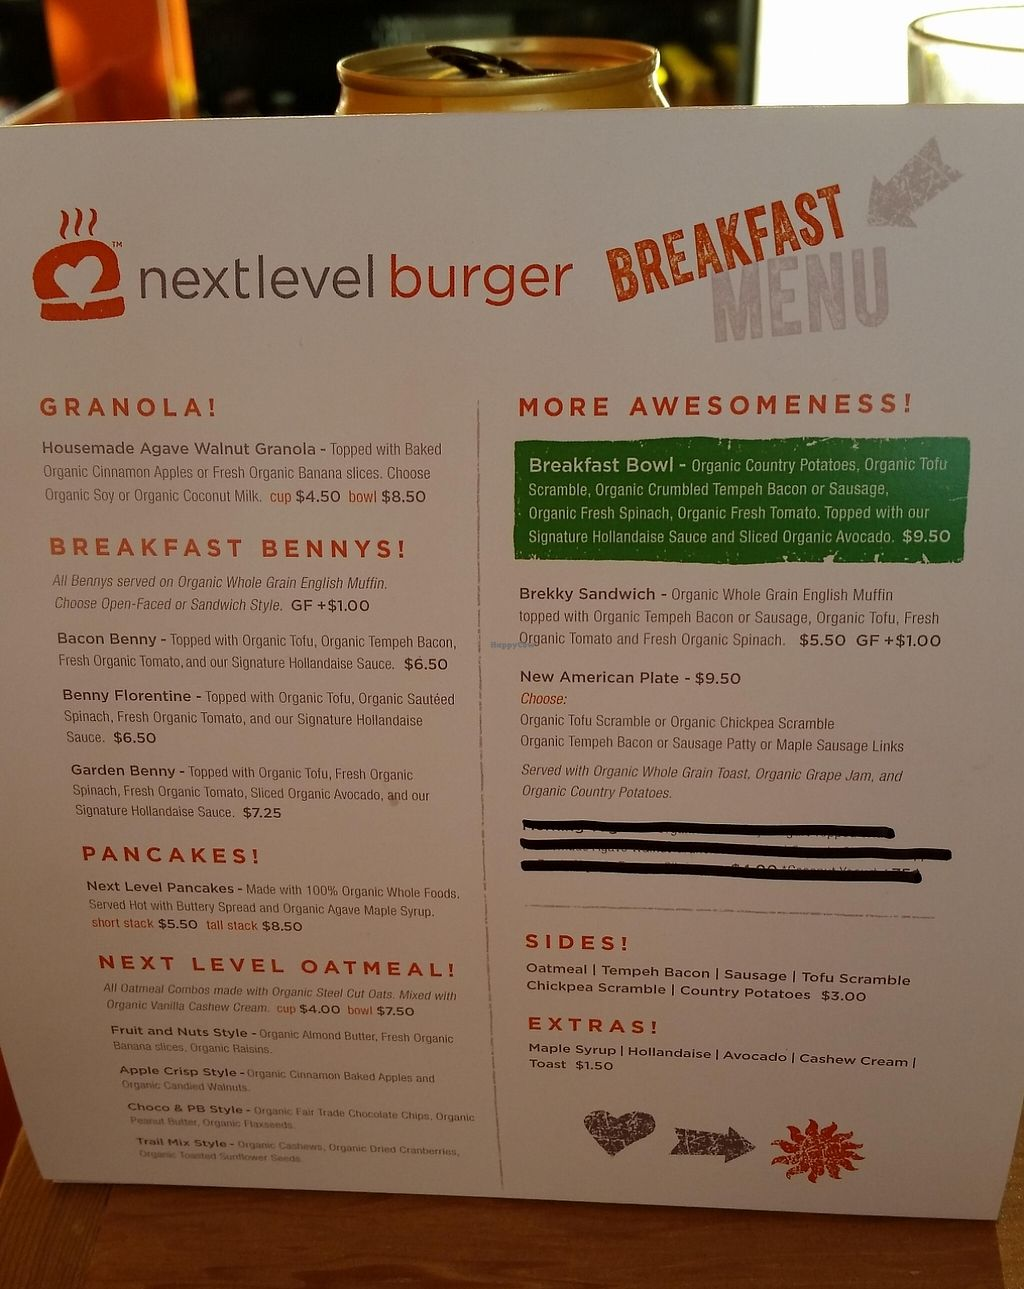 "Photo of Next Level Burger  by <a href=""/members/profile/katypine"">katypine</a> <br/>breakfast menu, too! <br/> October 24, 2015  - <a href='/contact/abuse/image/64640/221656'>Report</a>"